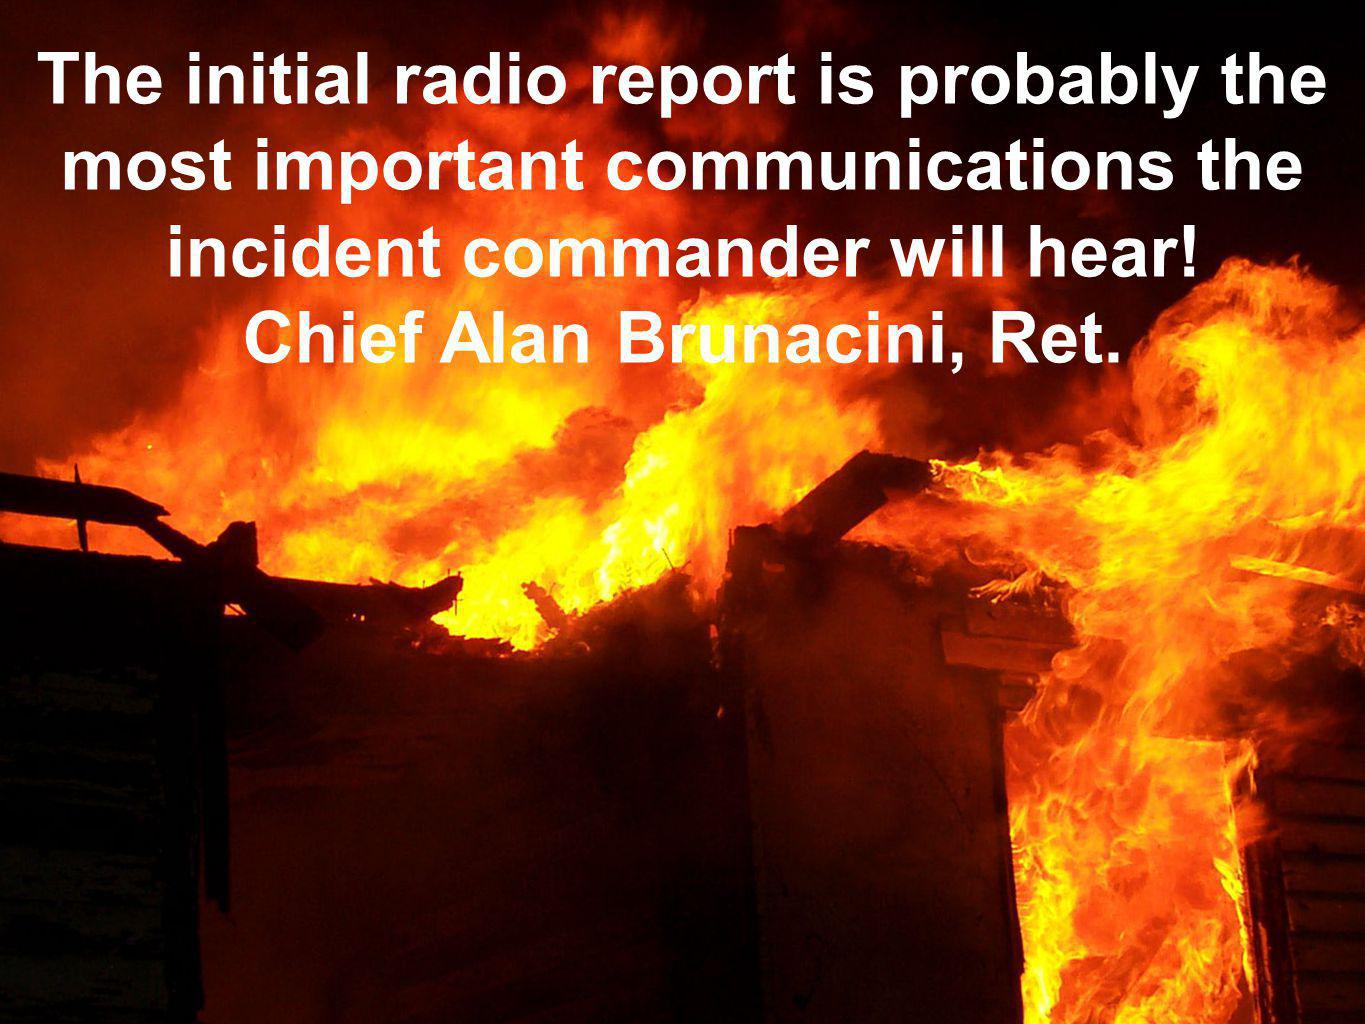 The initial radio report is probably the most important communications the incident commander will hear! Chief Alan Brunacini, Ret.